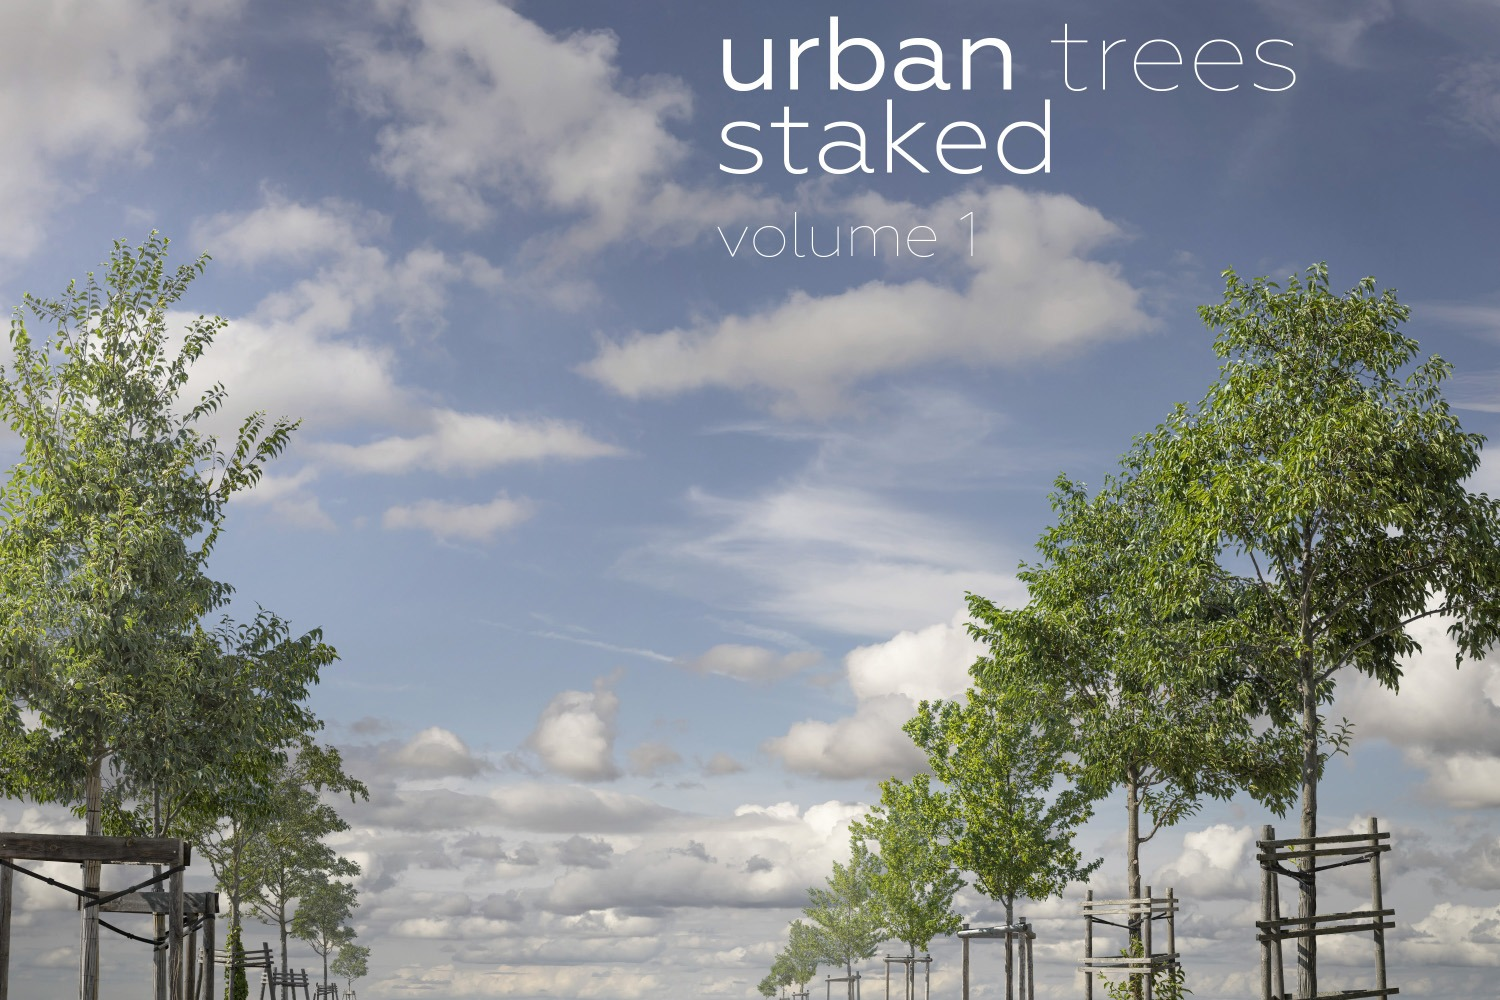 URBAN TREES STAKED Volume 1